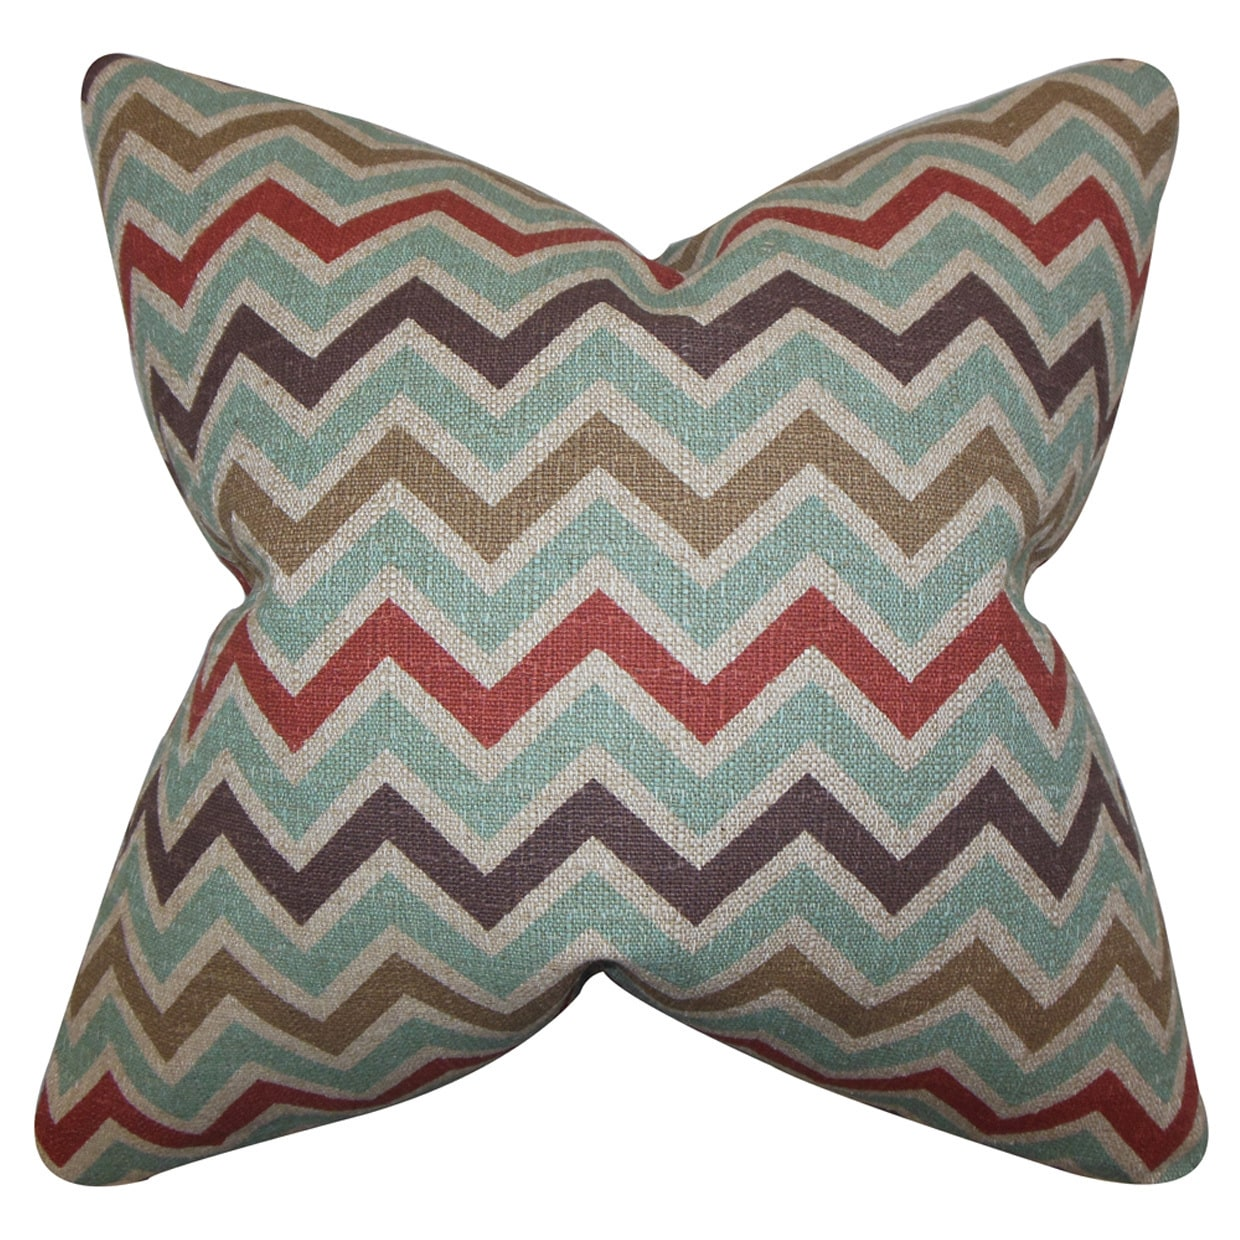 Howel Zigzag Throw Pillow Cover (18 x 18), Multi (Fabric)